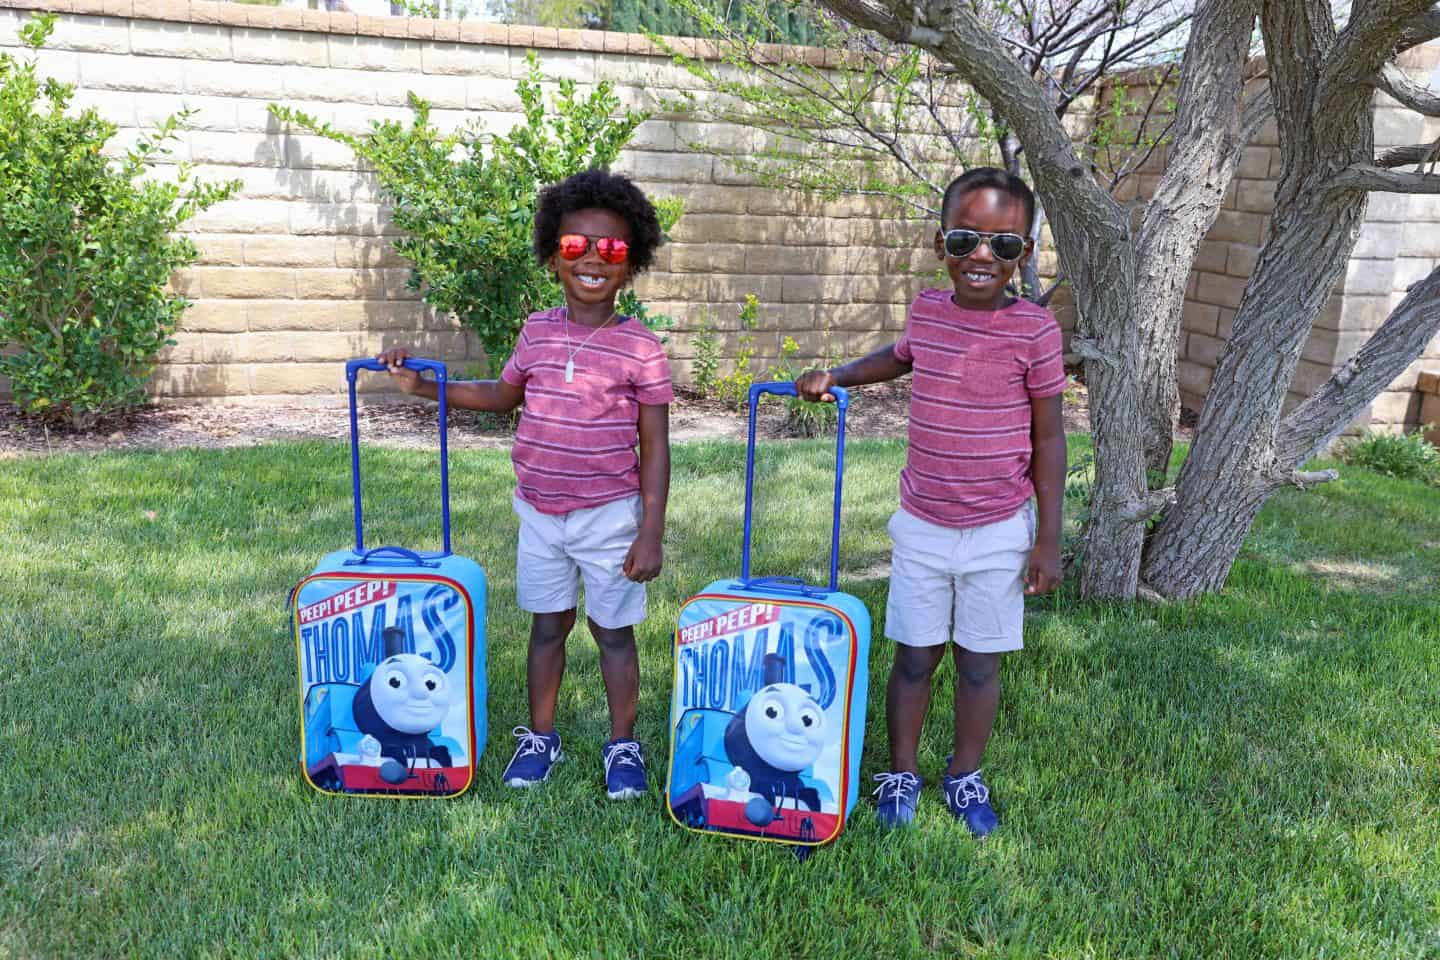 The Best Carry On Luggage For Kids of All Ages